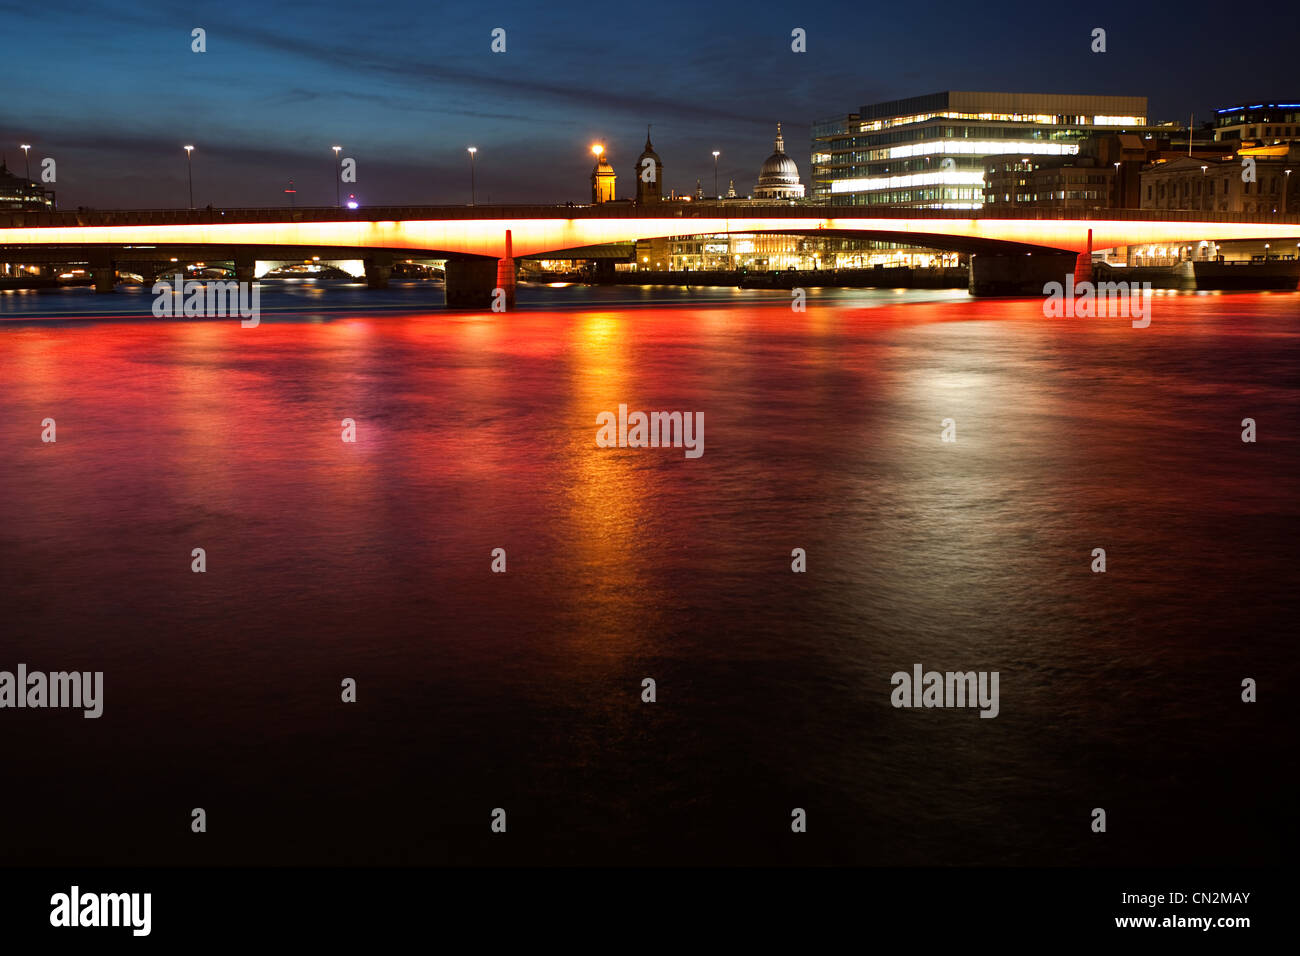 London Bridge, London, UK Stockbild